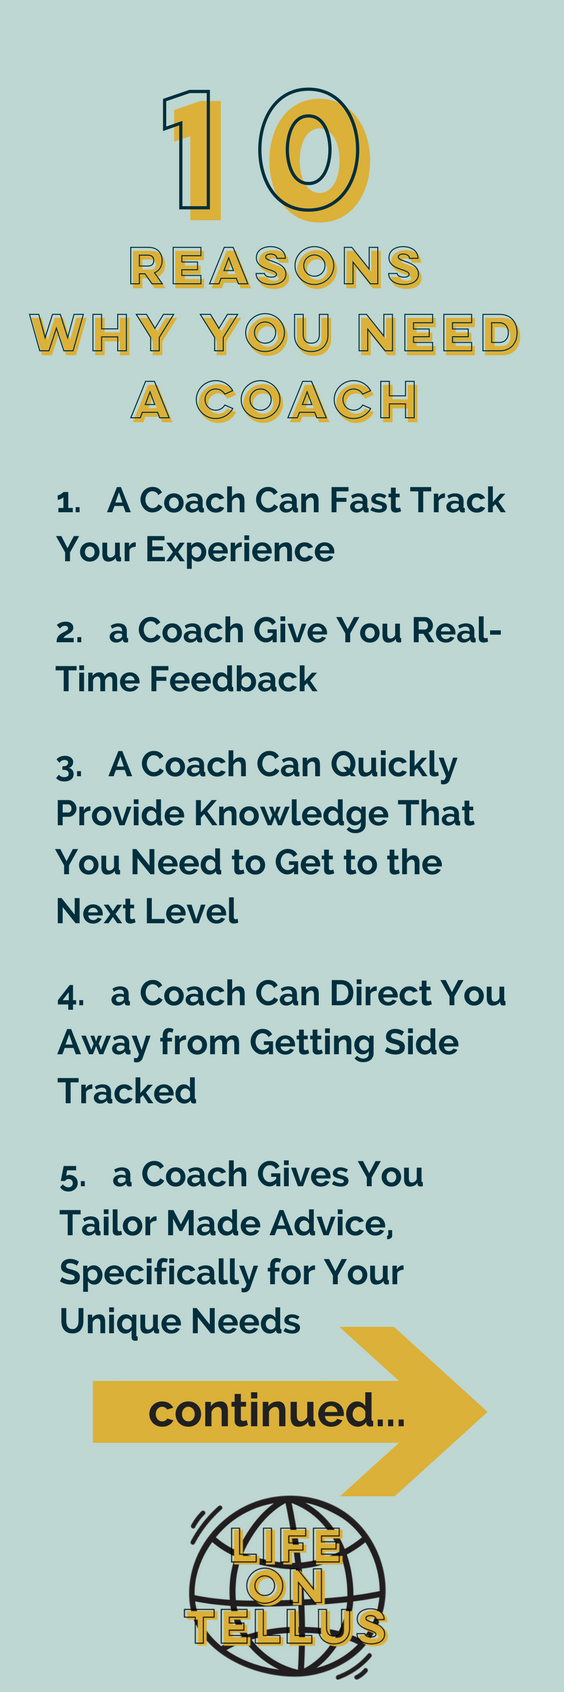 10 Reasons Why You Need a Coach